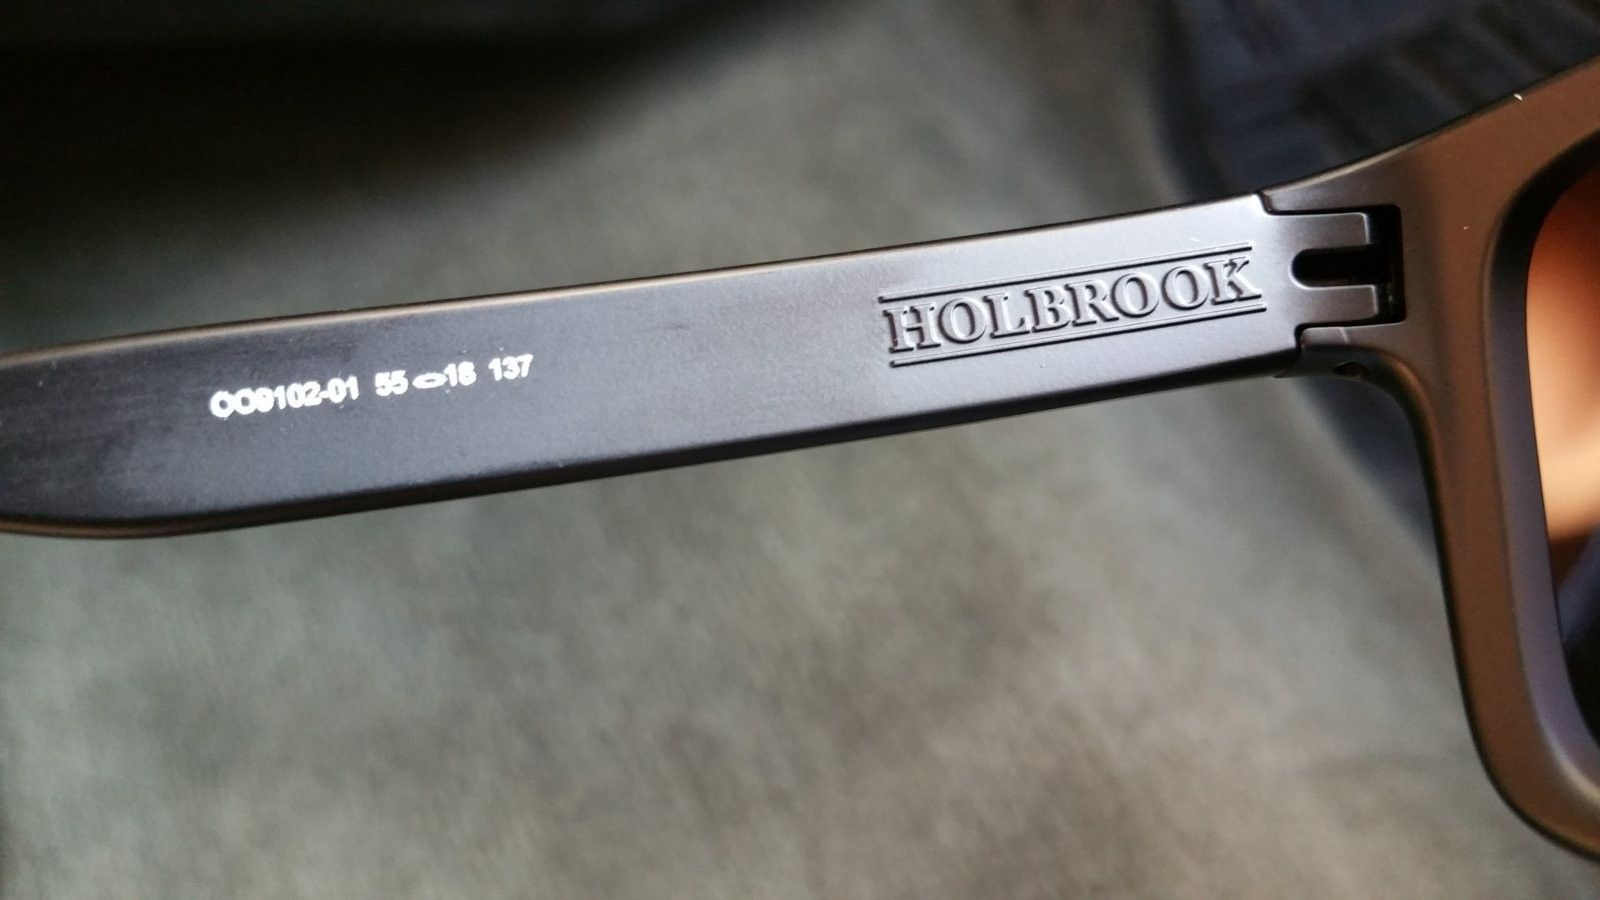 New matte holbrooks real or fake - 20160226_081902.jpg